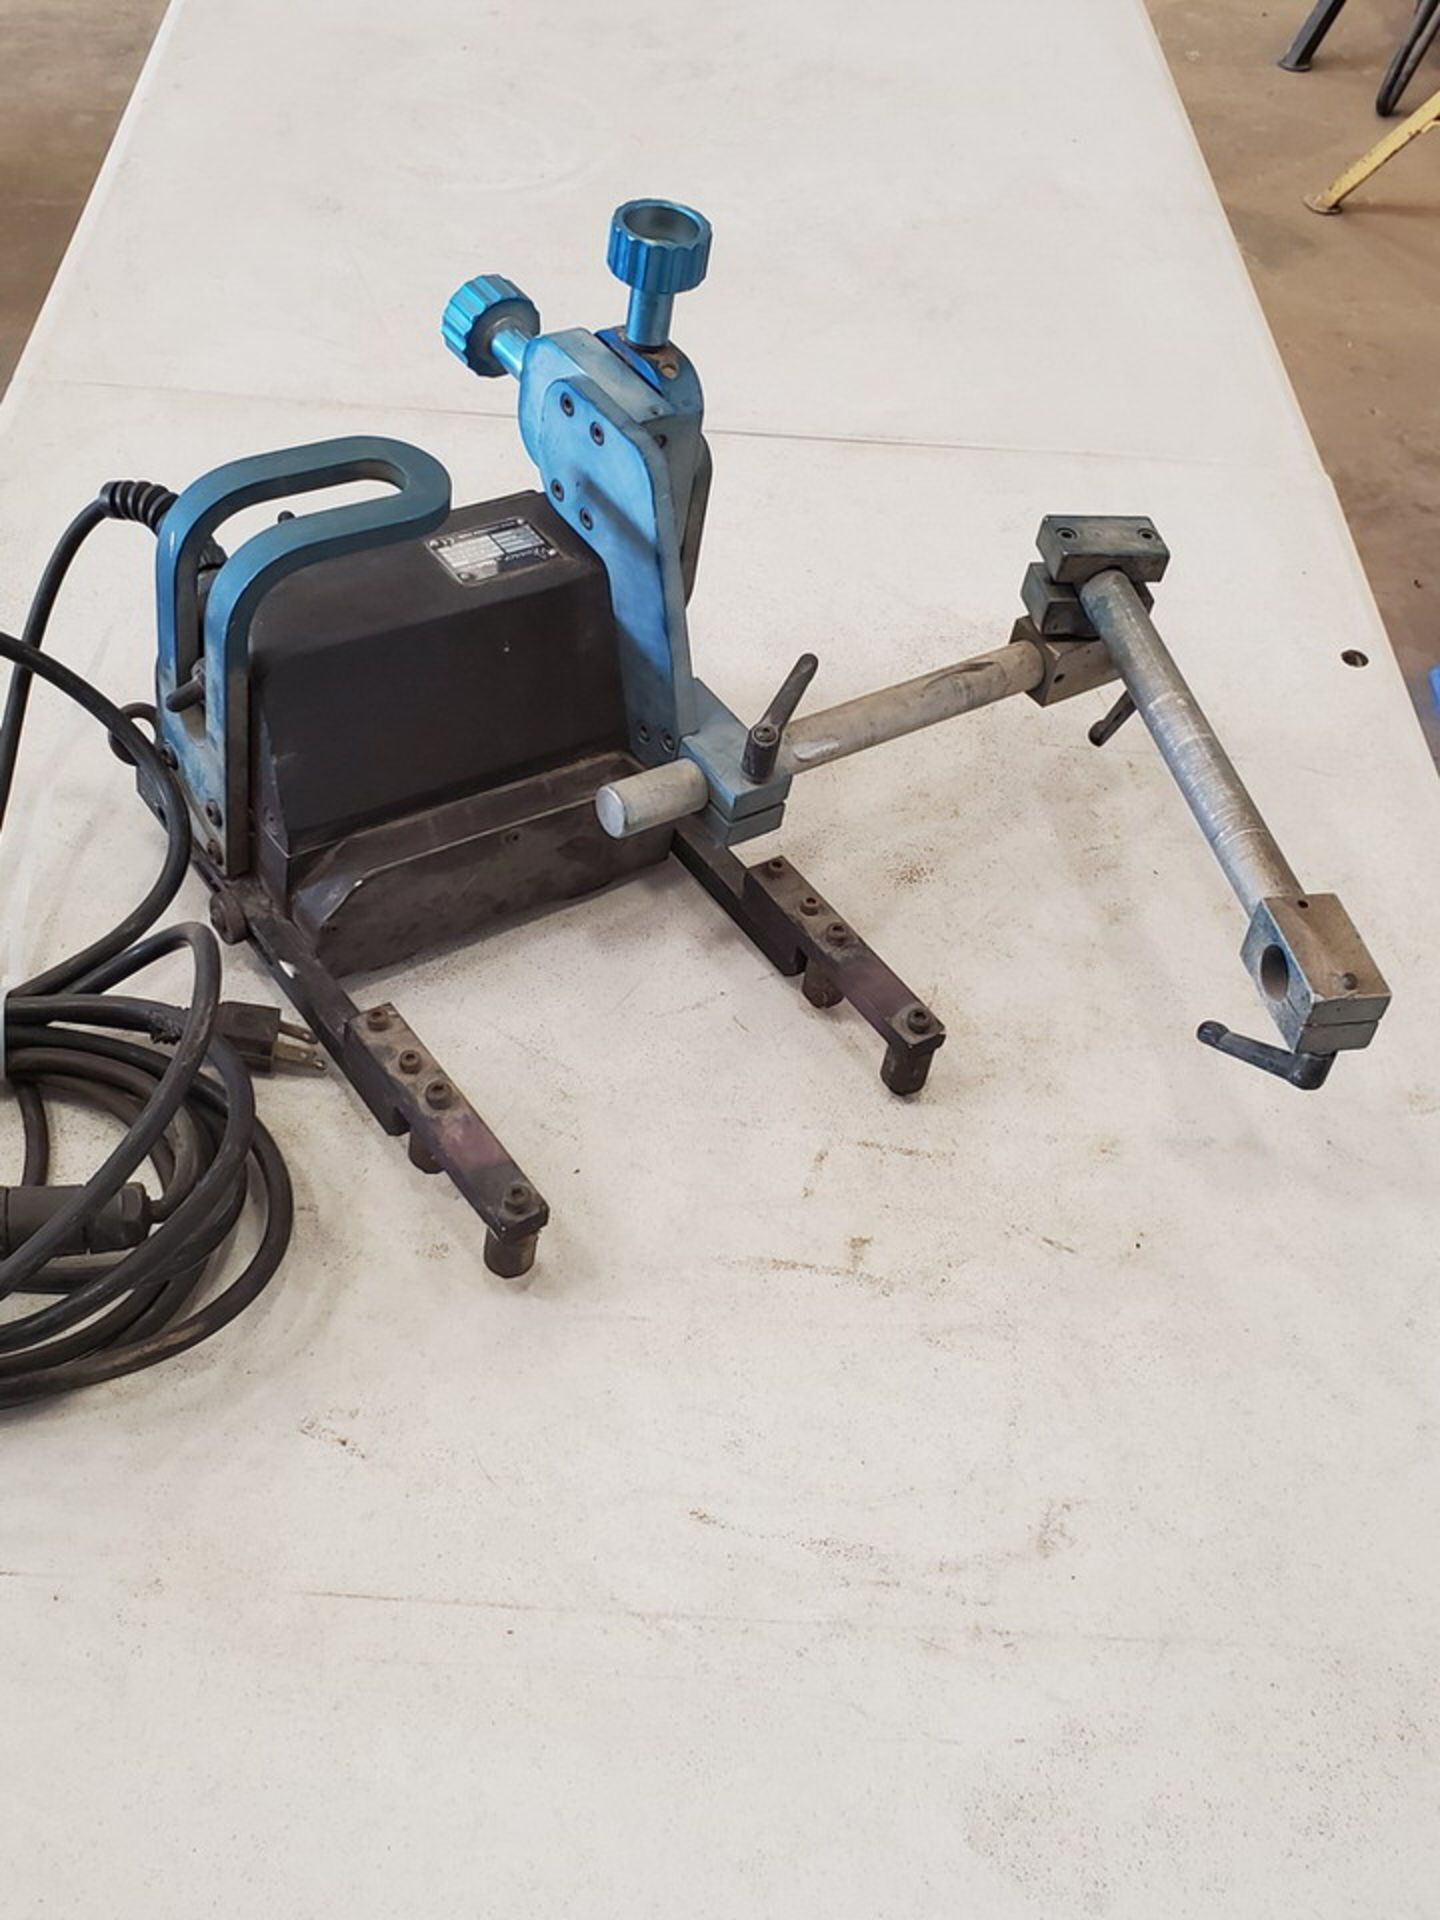 Steelmax Lil Runner Portable Fillet Welding Carriage 115-230V, 50/60HZ, 20W, .09-.18A - Image 5 of 7